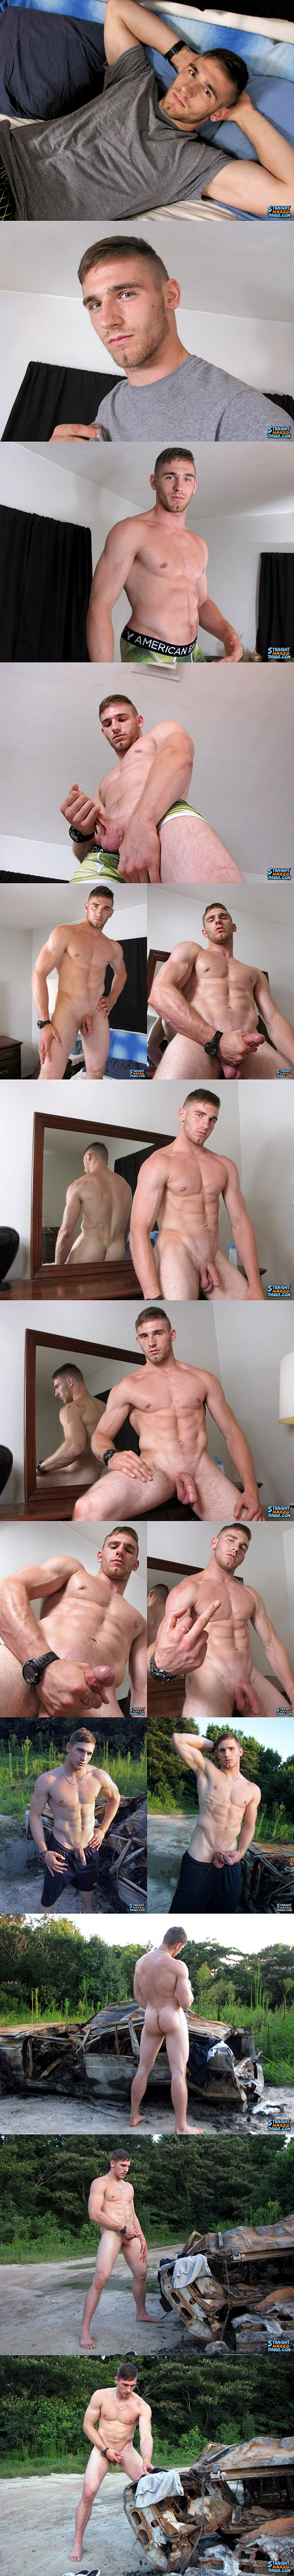 Super handsome muscle jock Elijah Knight shoots two sticky loads at Straightnakedthugs 02